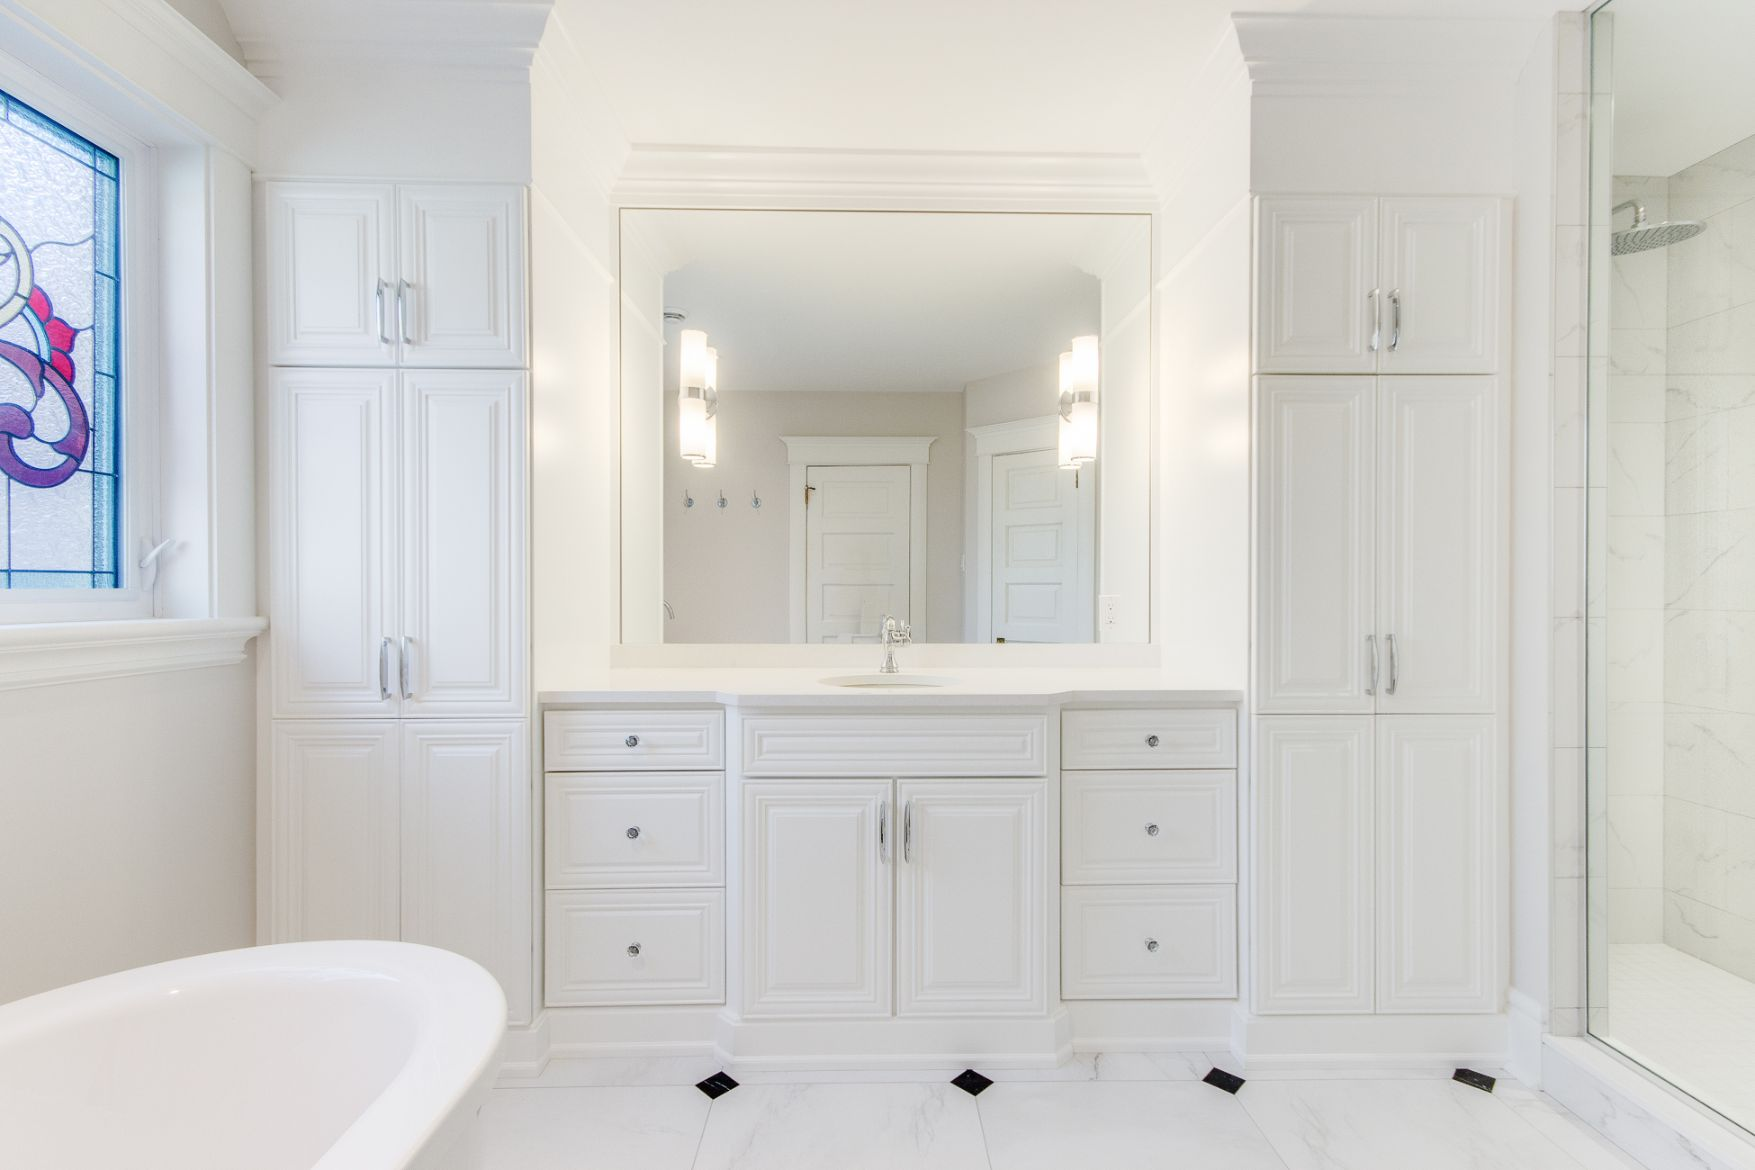 Bathroom Renovations Windsor ccr building & remodeling | an award winning renovator in london